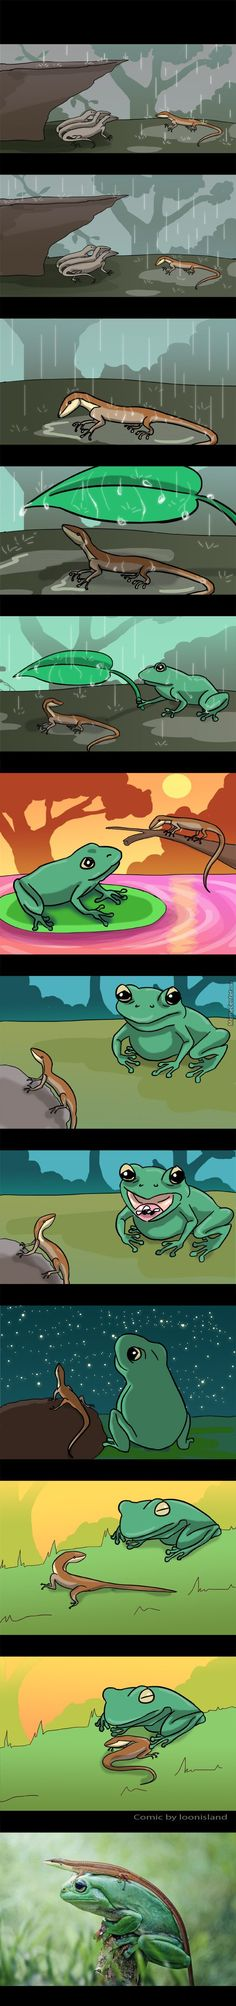 Sad yet funny how amphibians are more accepting than humans. Cute Funny Animals, Cute Baby Animals, Funny Cute, Animals And Pets, Super Funny, Amphibians, Reptiles, Lizards, Animal Pictures